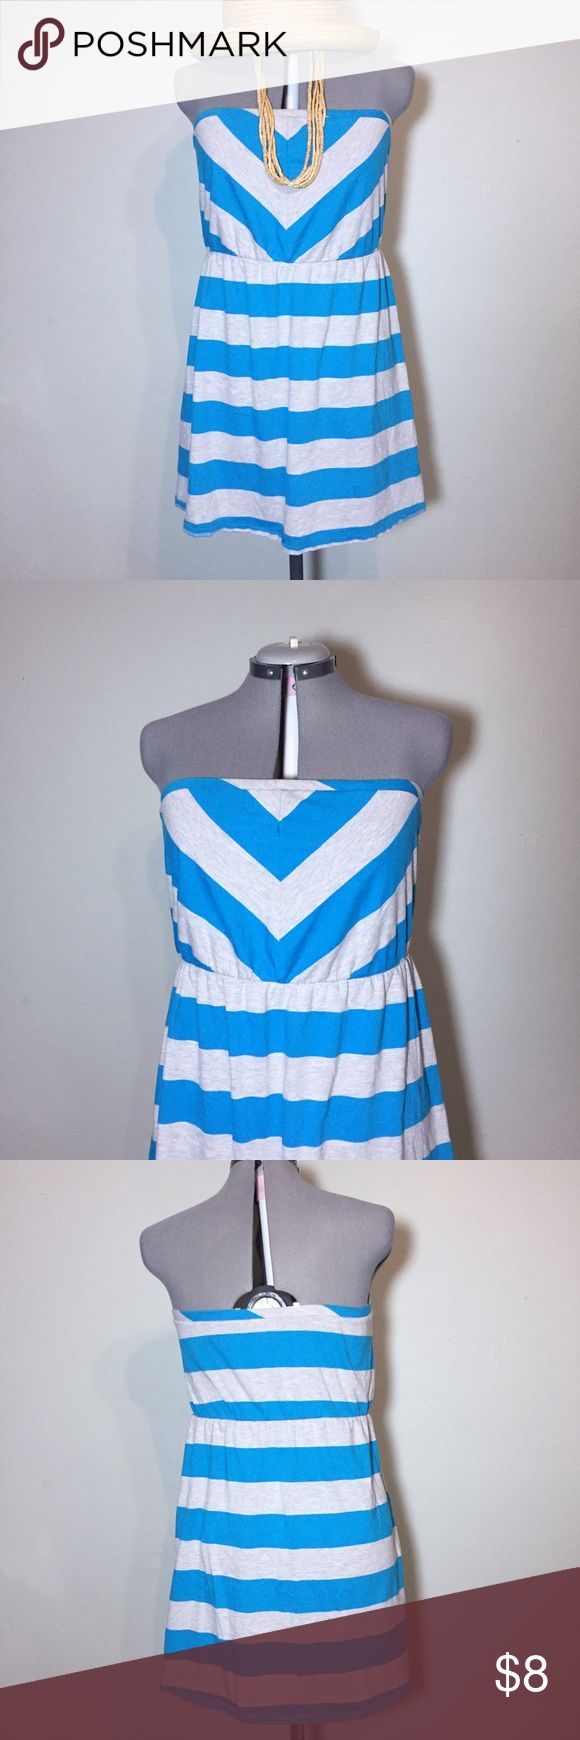 """Mossimo Blue & Gray Striped Strapless Summer Dress Mossimo Blue & Gray Striped Strapless Summer Dress. Size XL measures flat: 17-22"""" across elastic at top, 16-22"""" across waist, 28"""" across bottom, 28"""" long. 60% cotton, 40% poly. There is some piling from washing but it is t too bad521/25/060117 Mossimo Supply Co Dresses Strapless"""